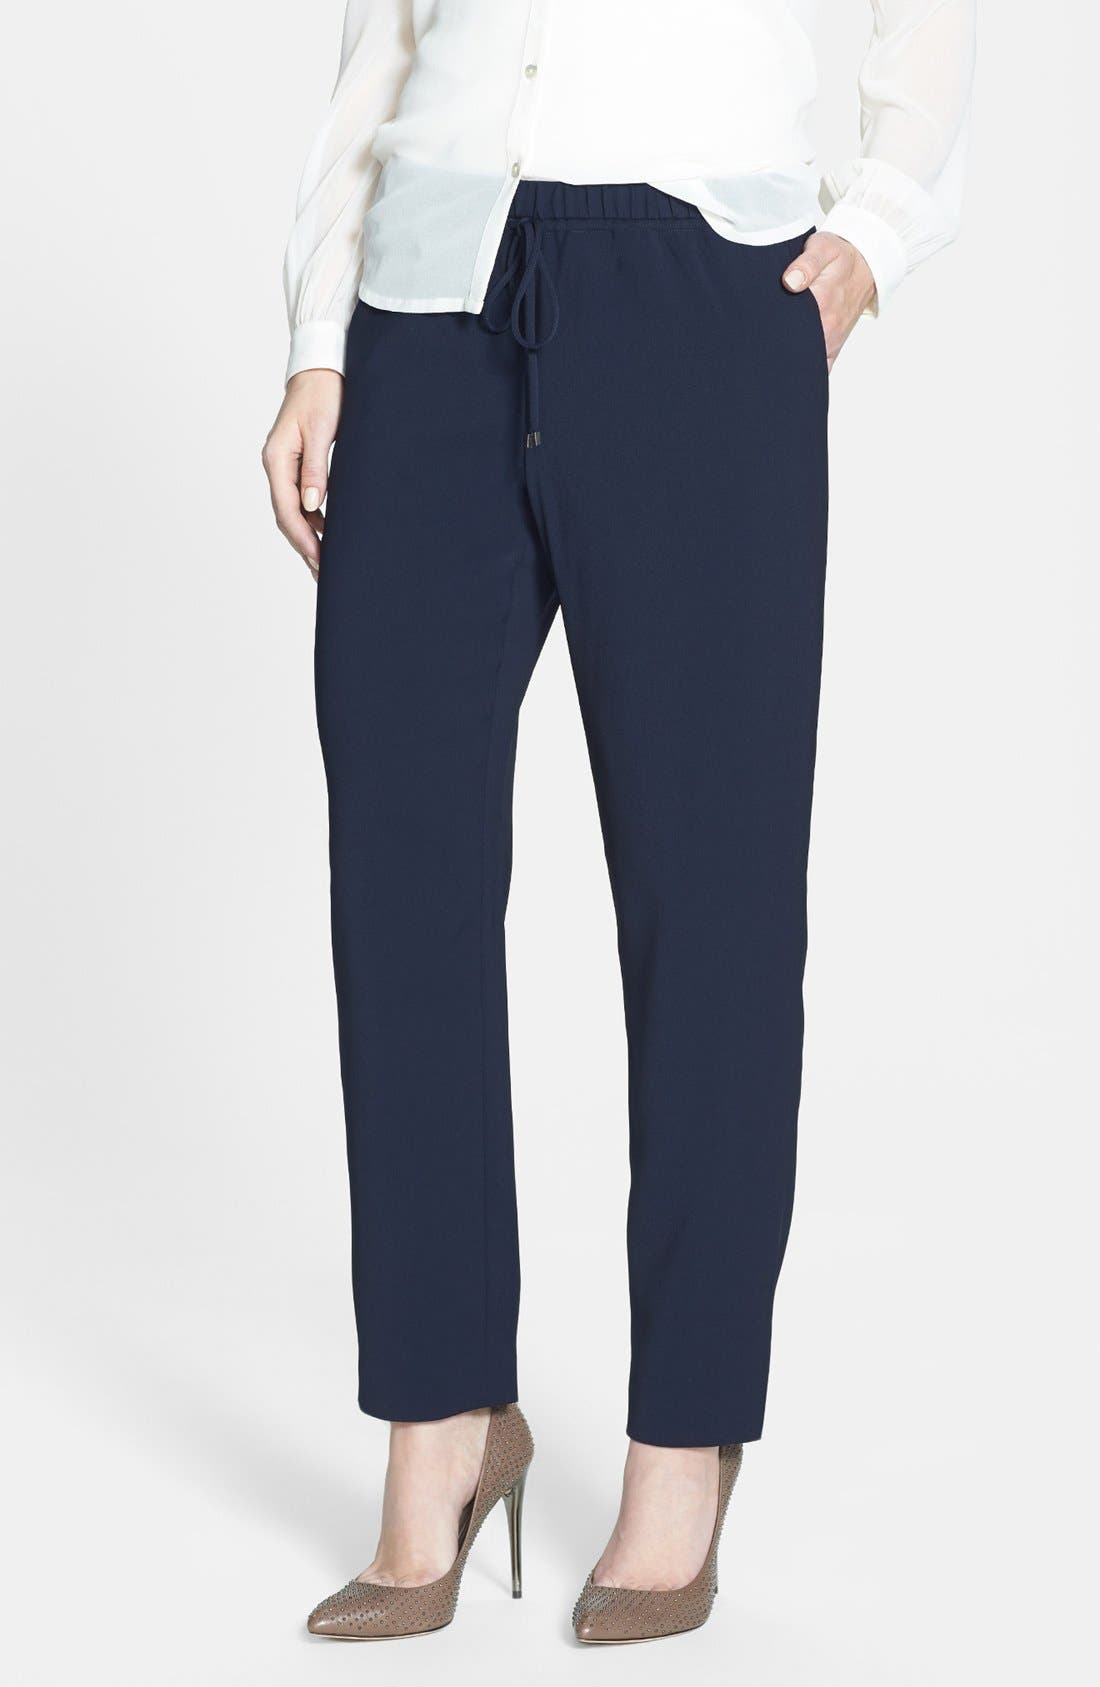 Main Image - T Tahari 'Loren' Drawstring Waist Stretch Twill Pants